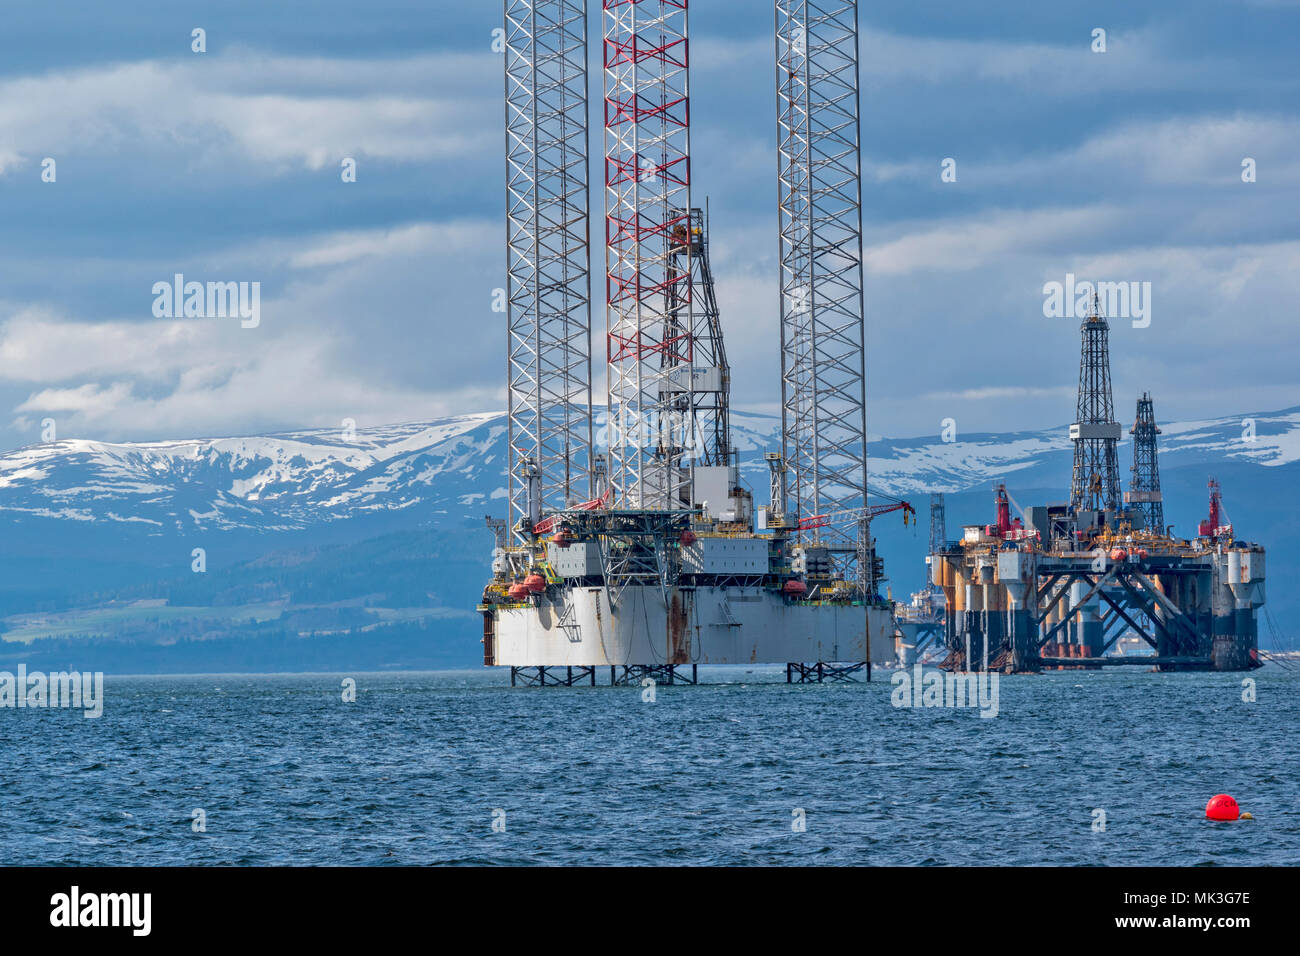 CROMARTY FIRTH SCOTLAND TALL OIL RIG OR DRILLING PLATFORM BAUG AND DECOMMISSIONED OIL RIG WITH SNOW COVERED HILLS Stock Photo